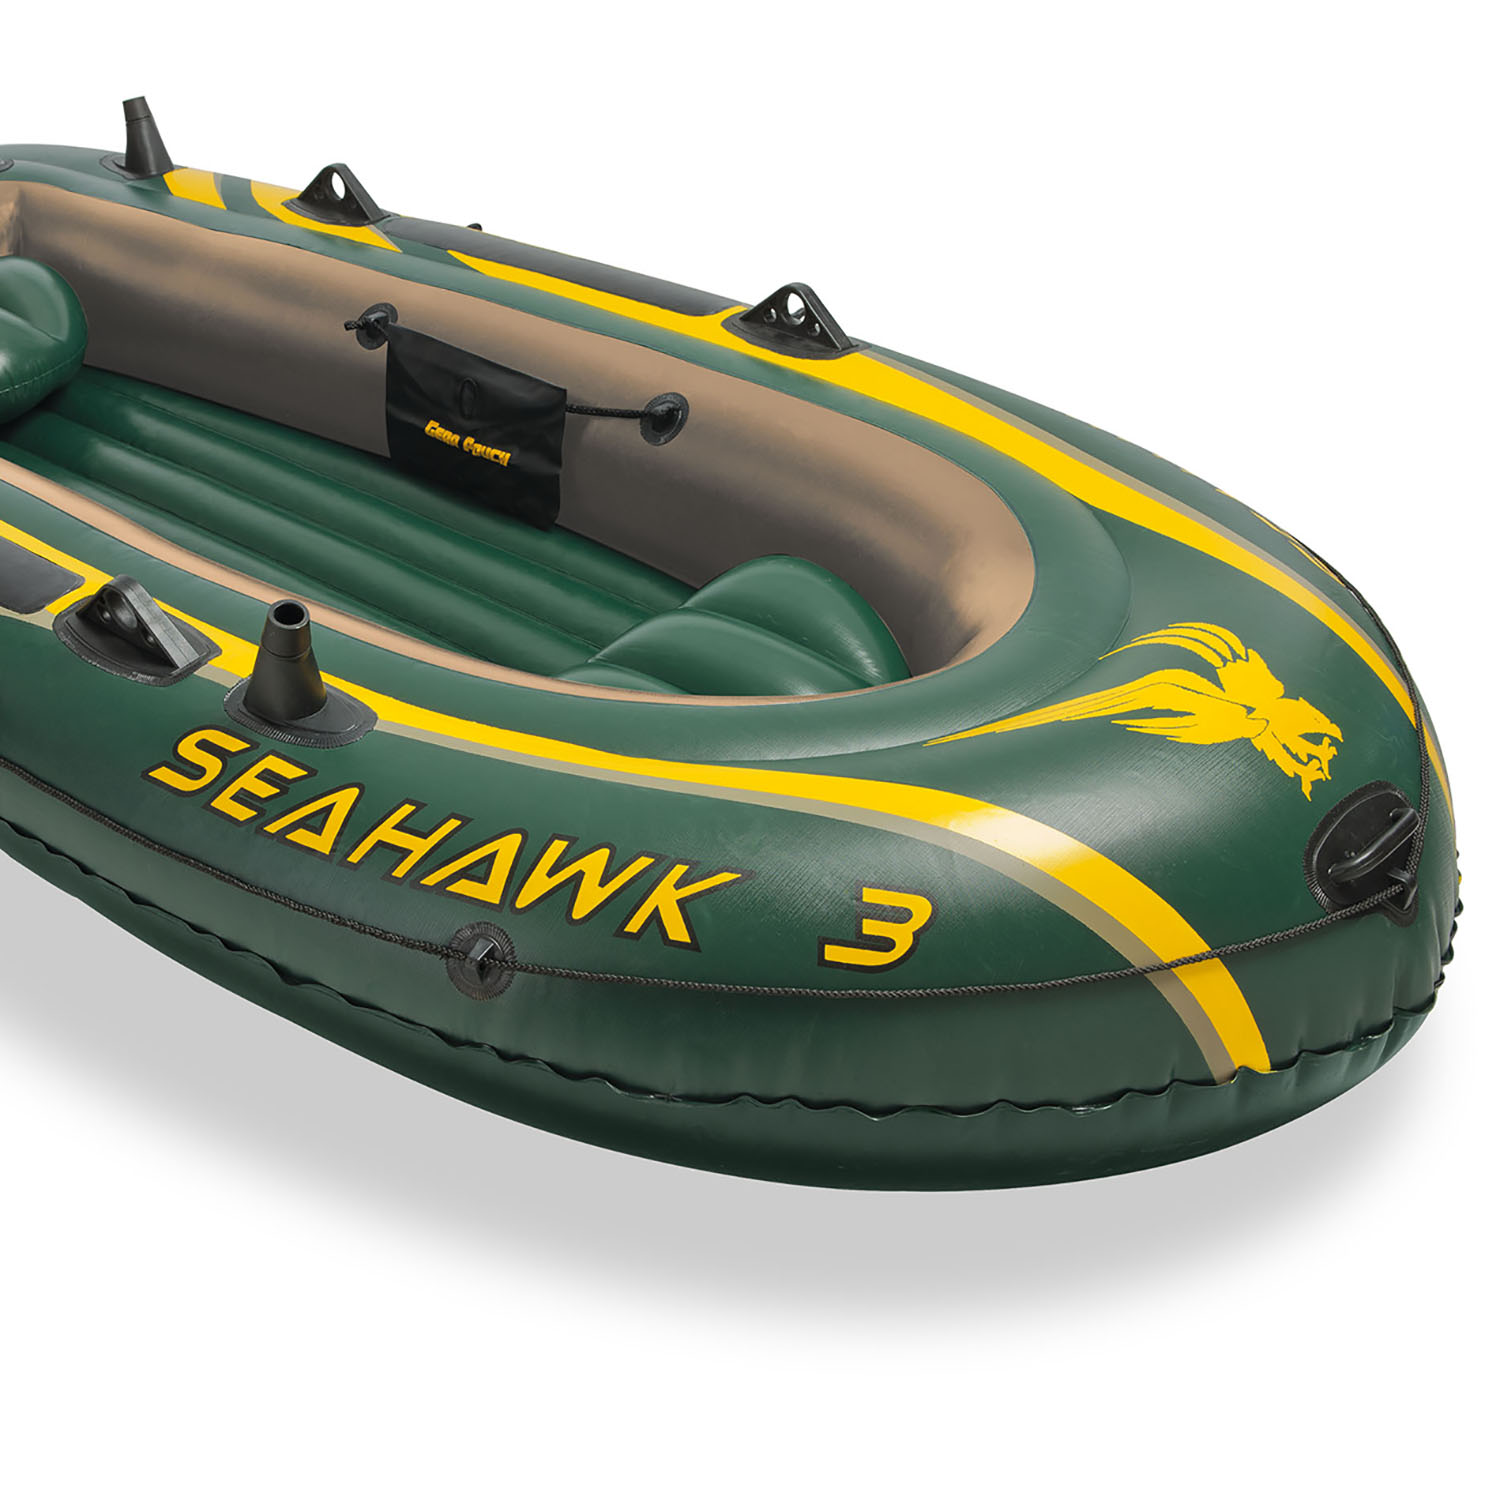 Intex seahawk 3 heavy duty inflatable fishing boat with for Inflatable fishing boats